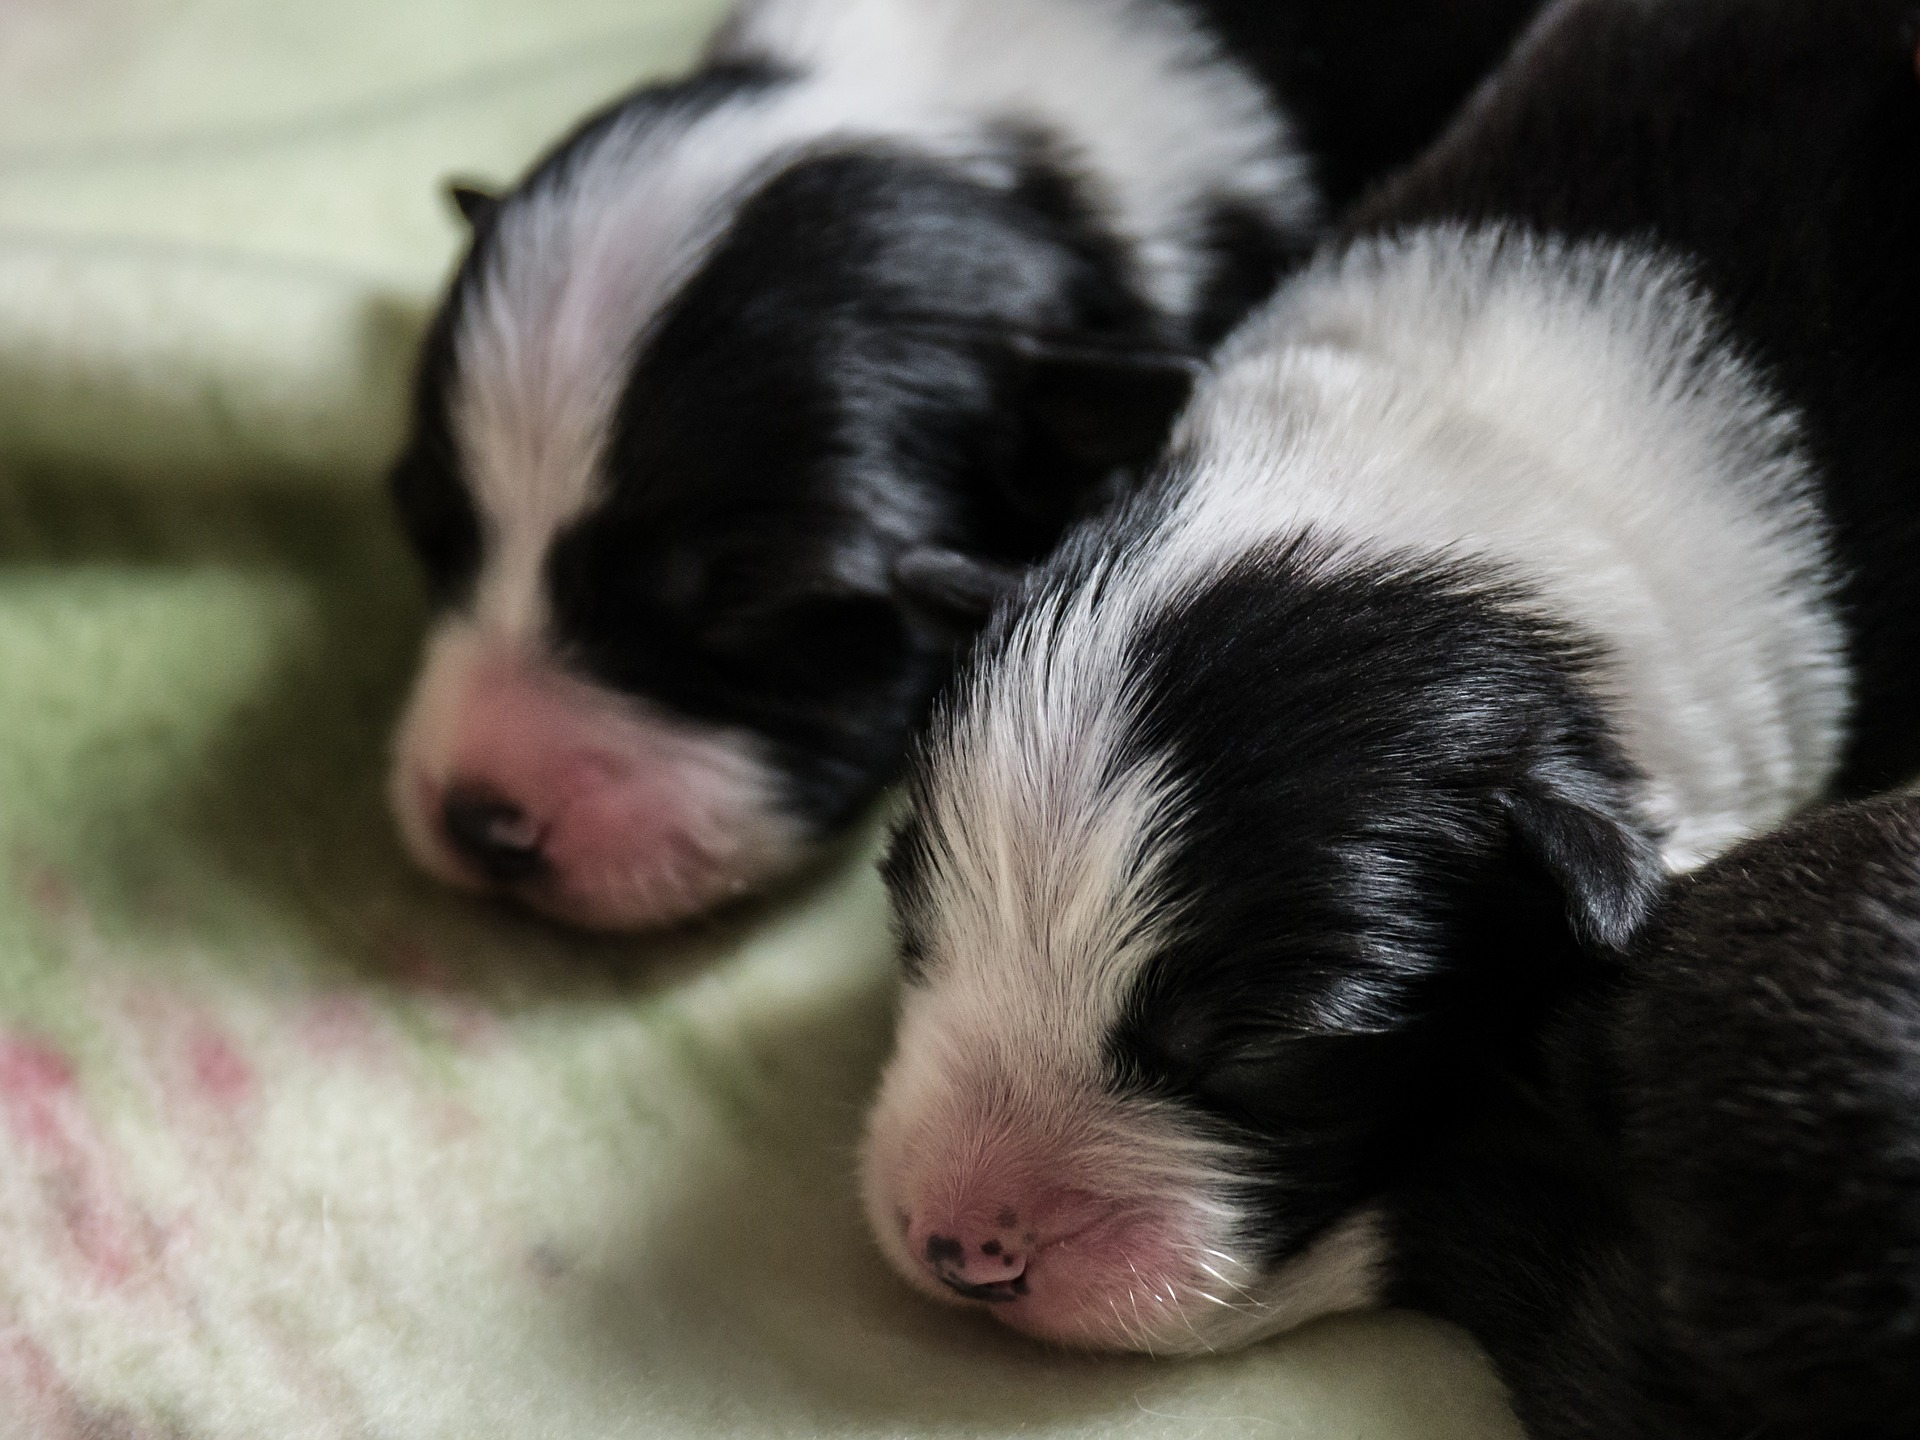 Stock picture of border collie puppies - for illustrative purposes only